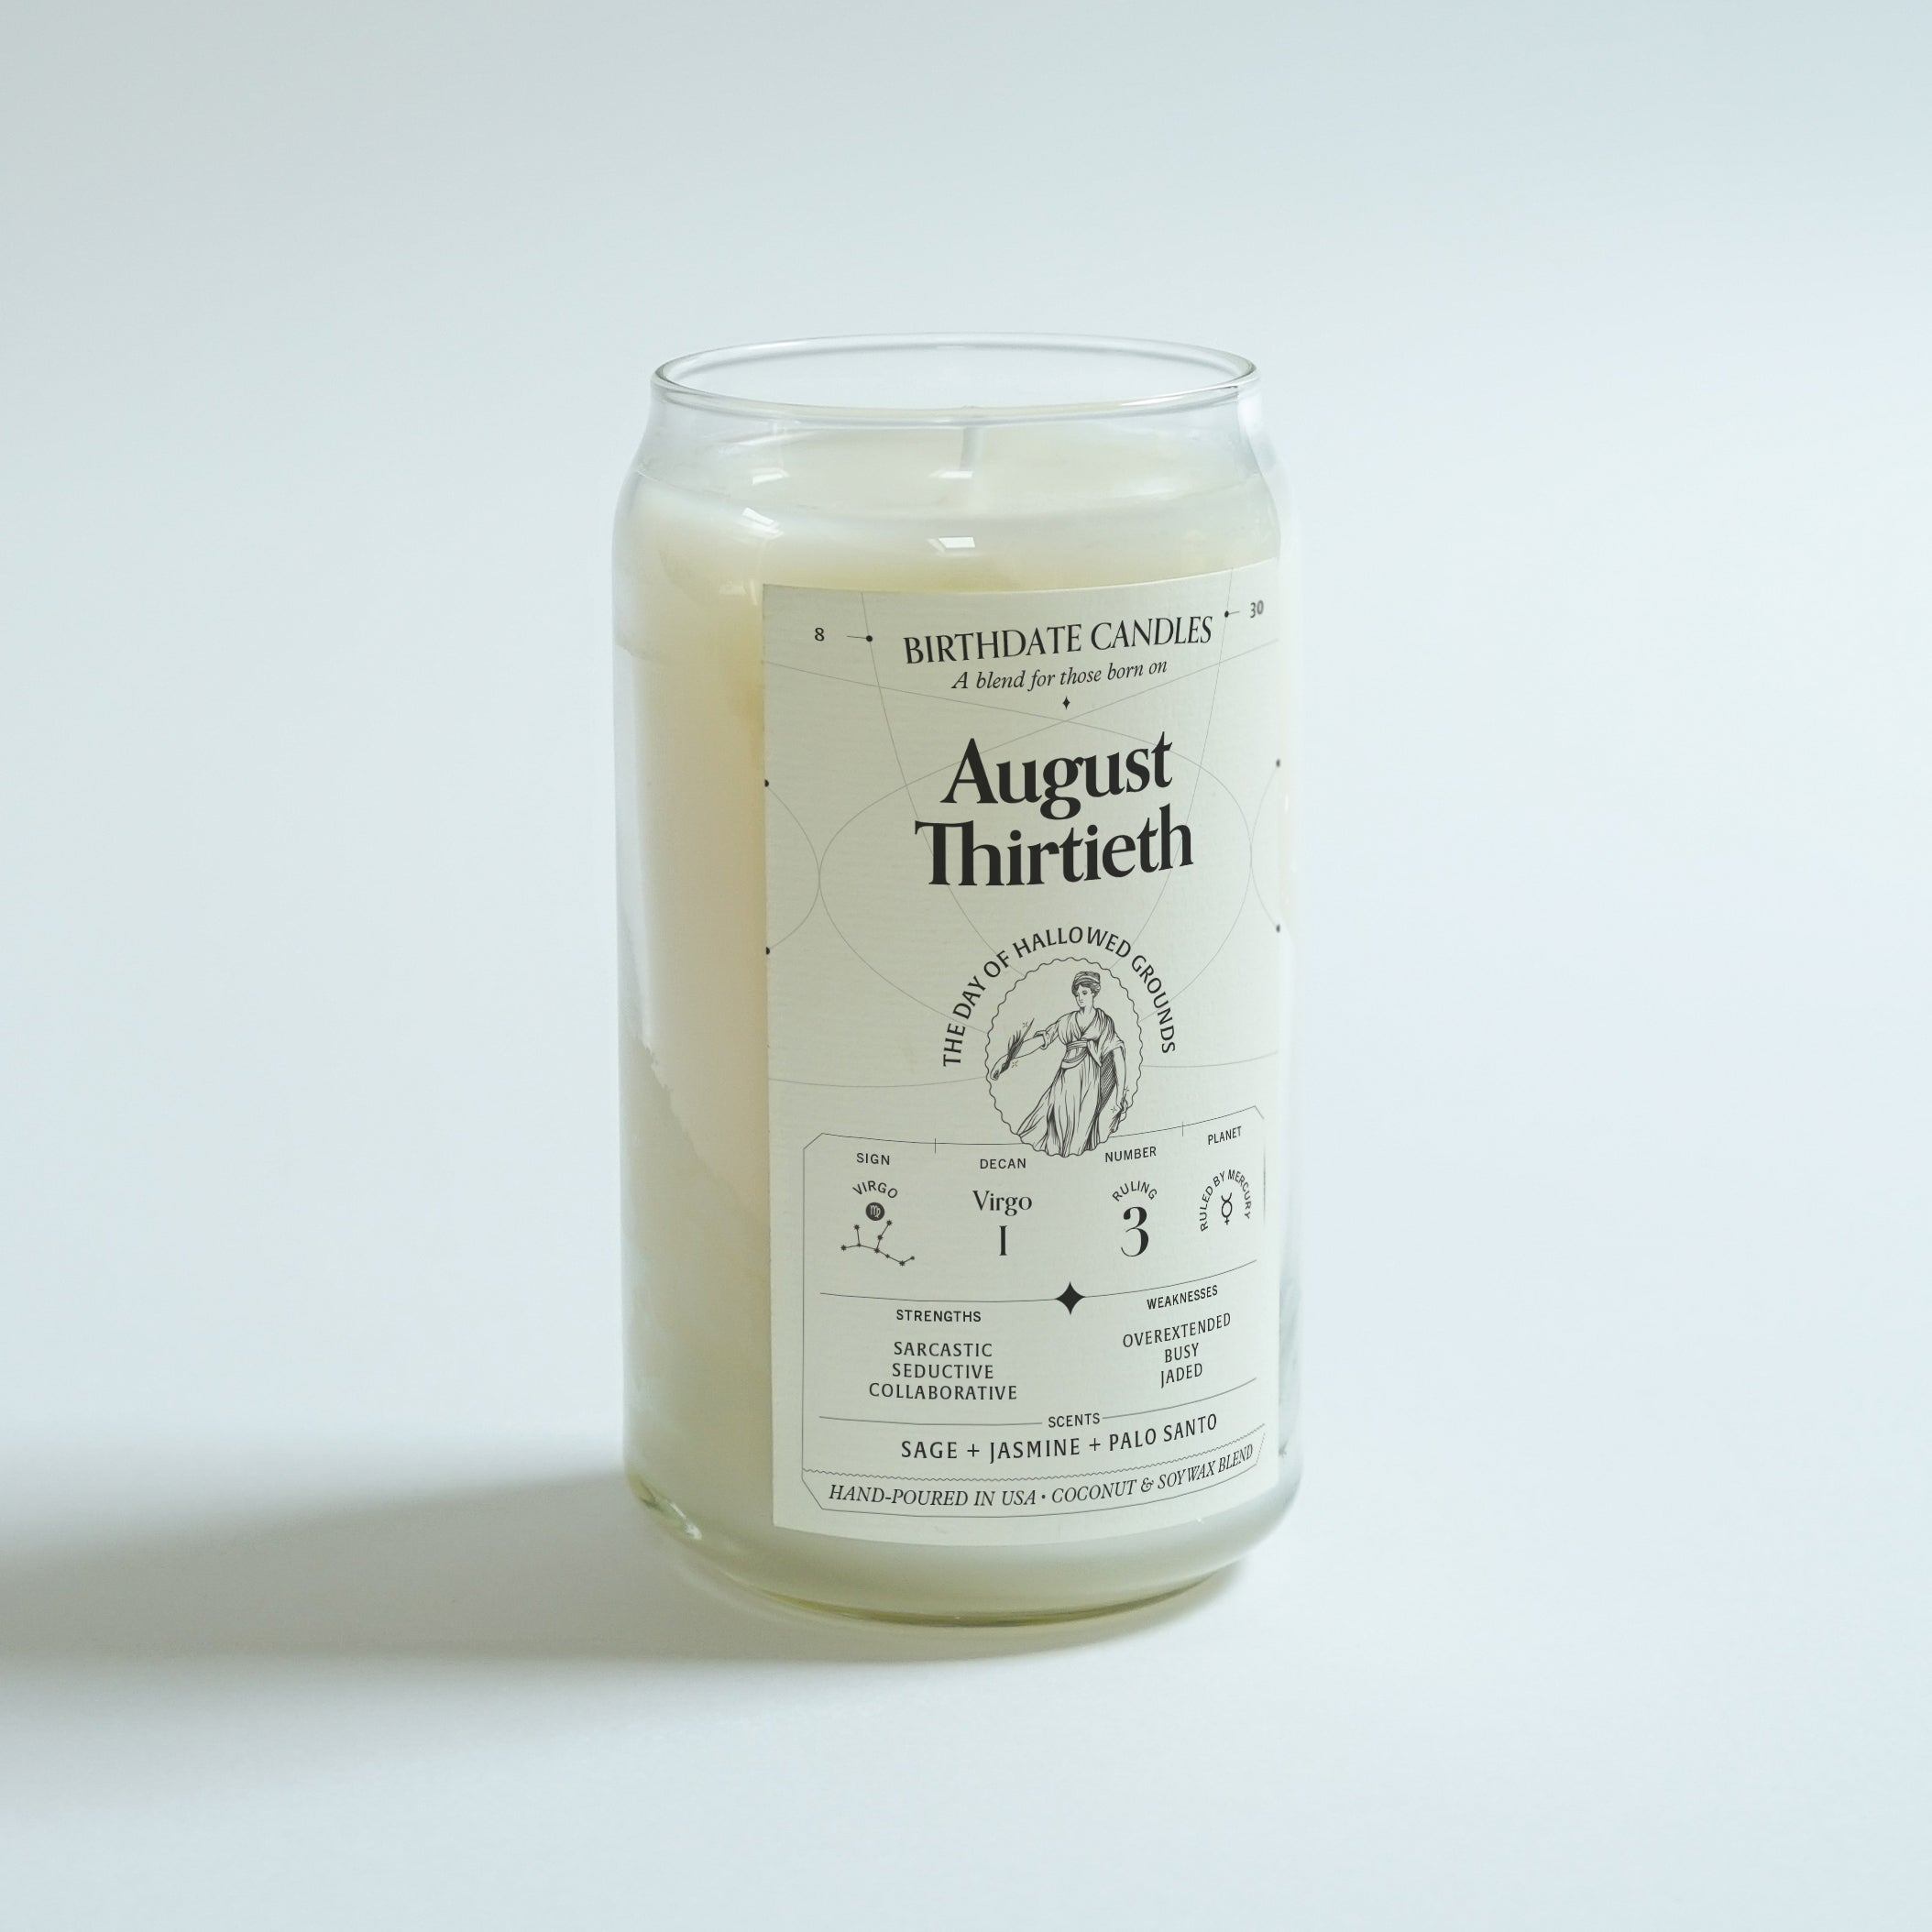 The August Thirtieth Candle